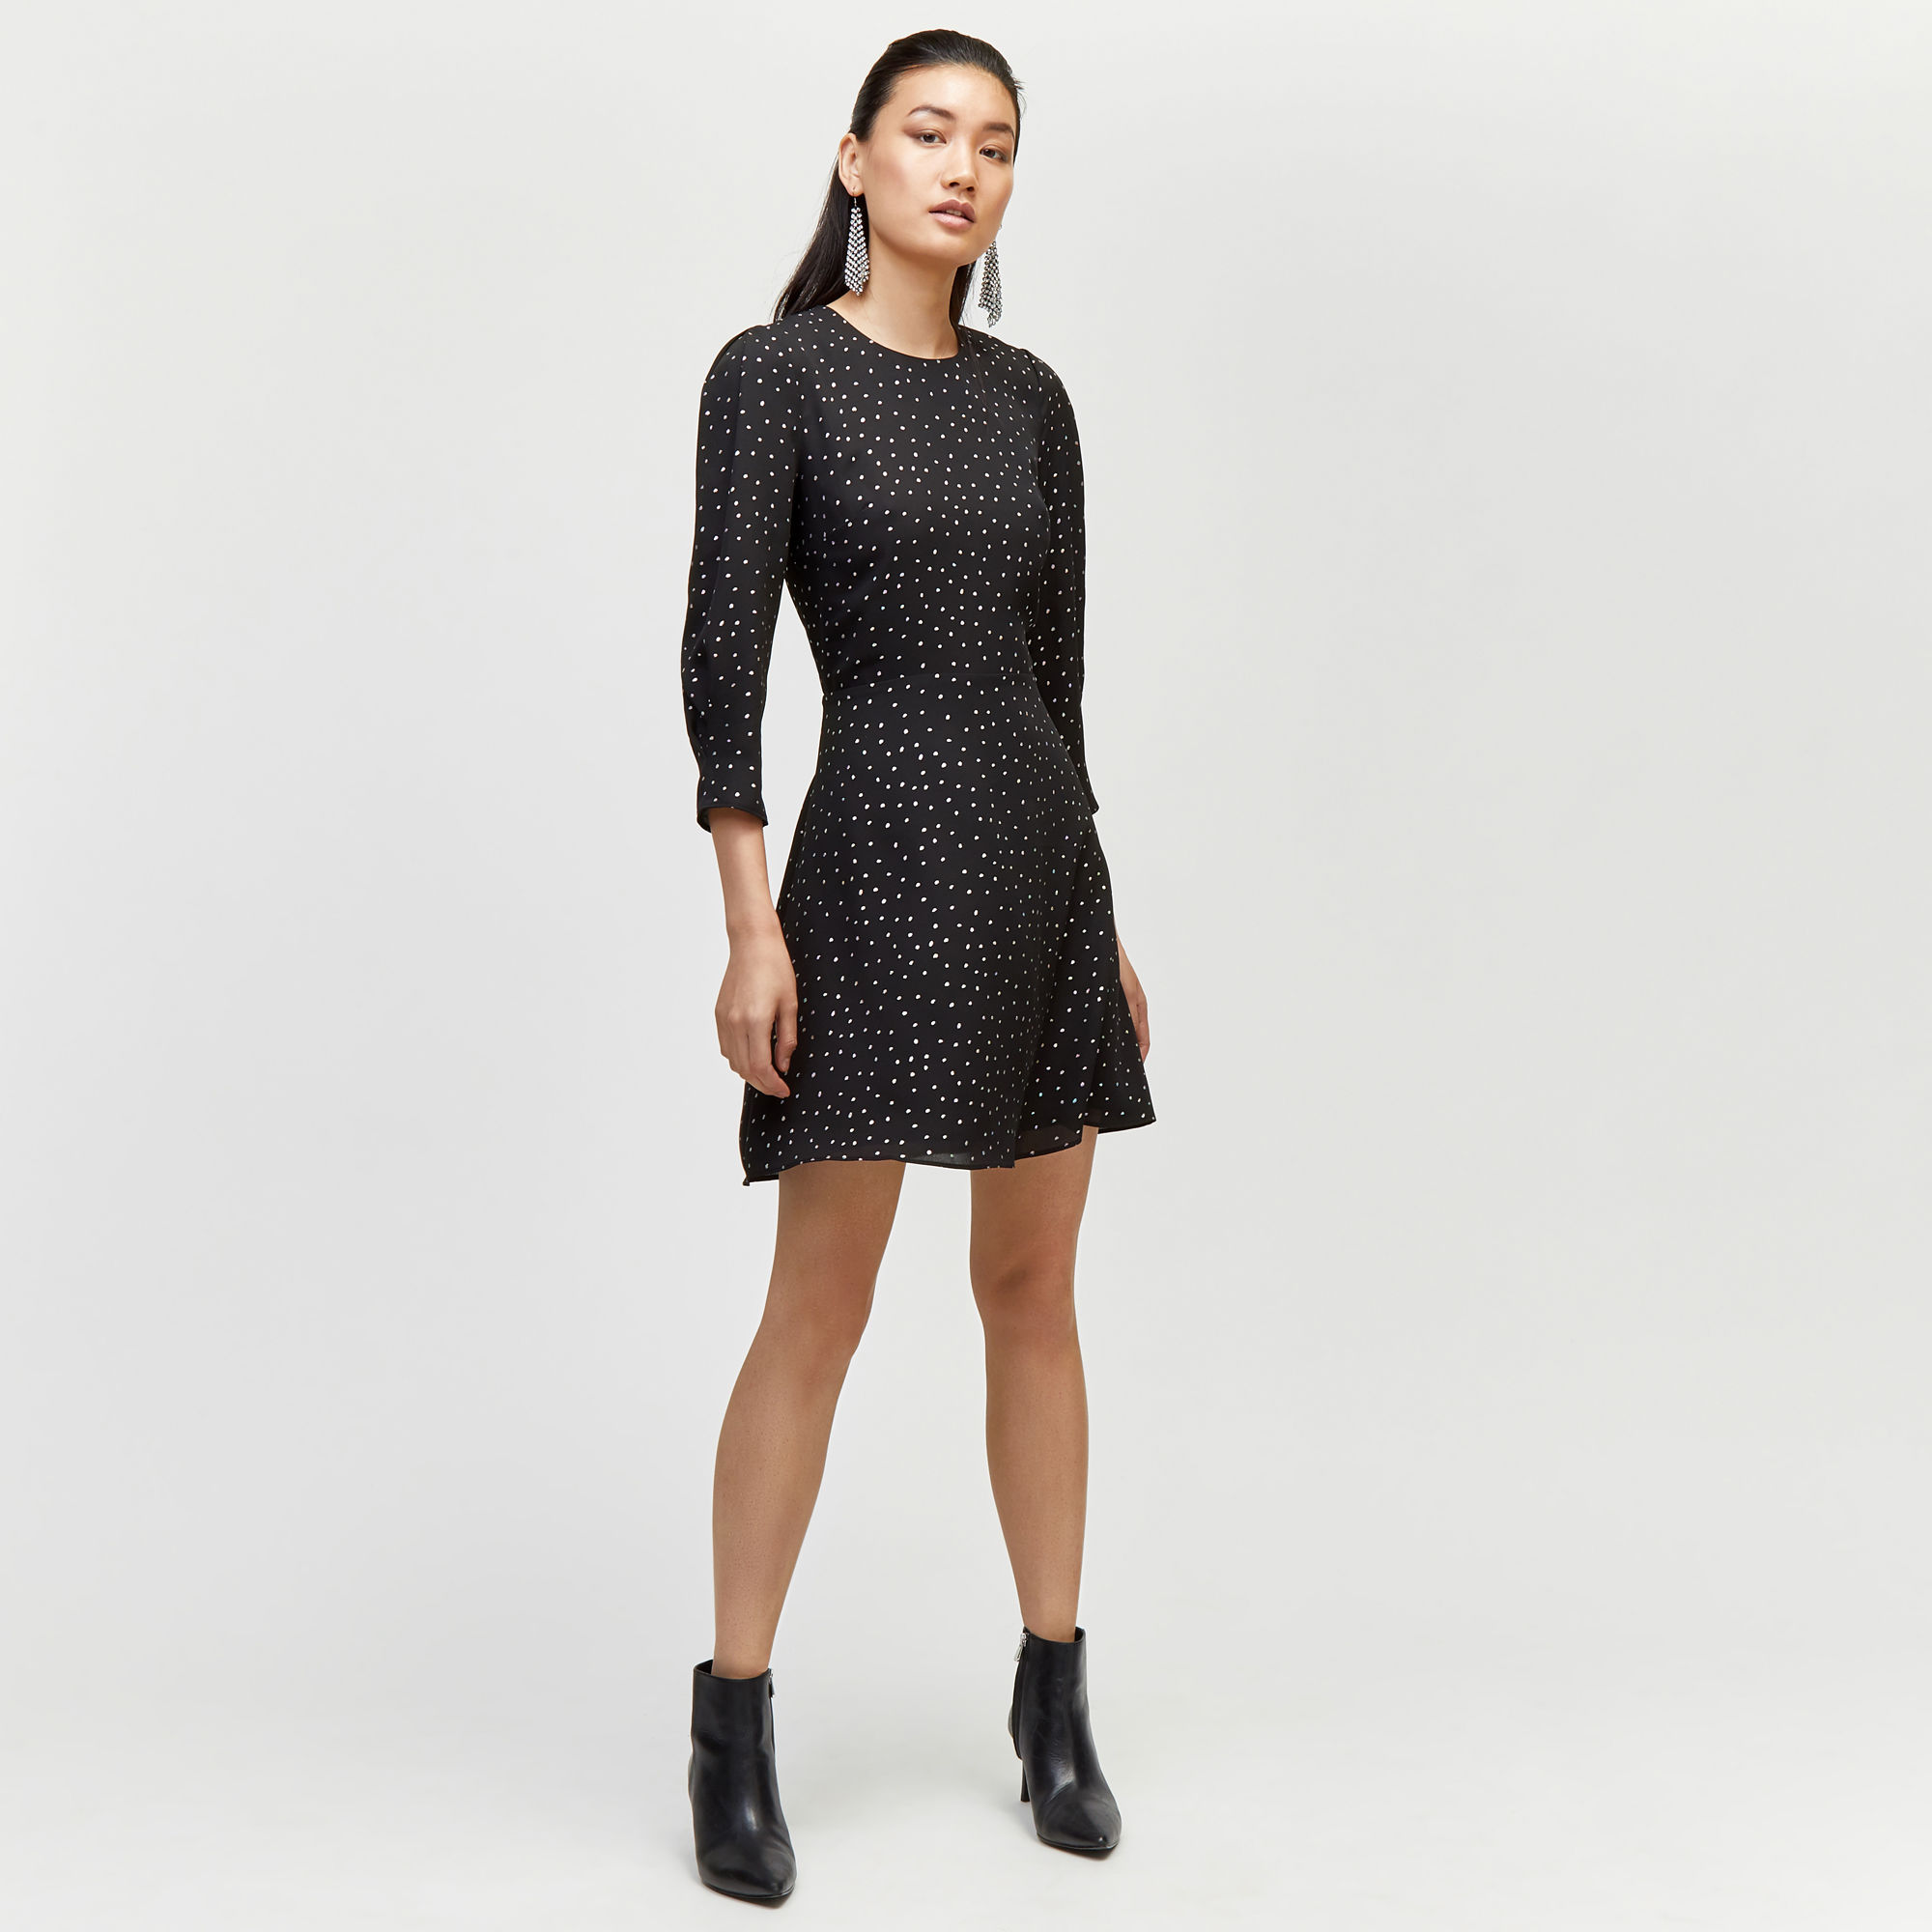 Warehouse Irridiscent Spot Mini Dress